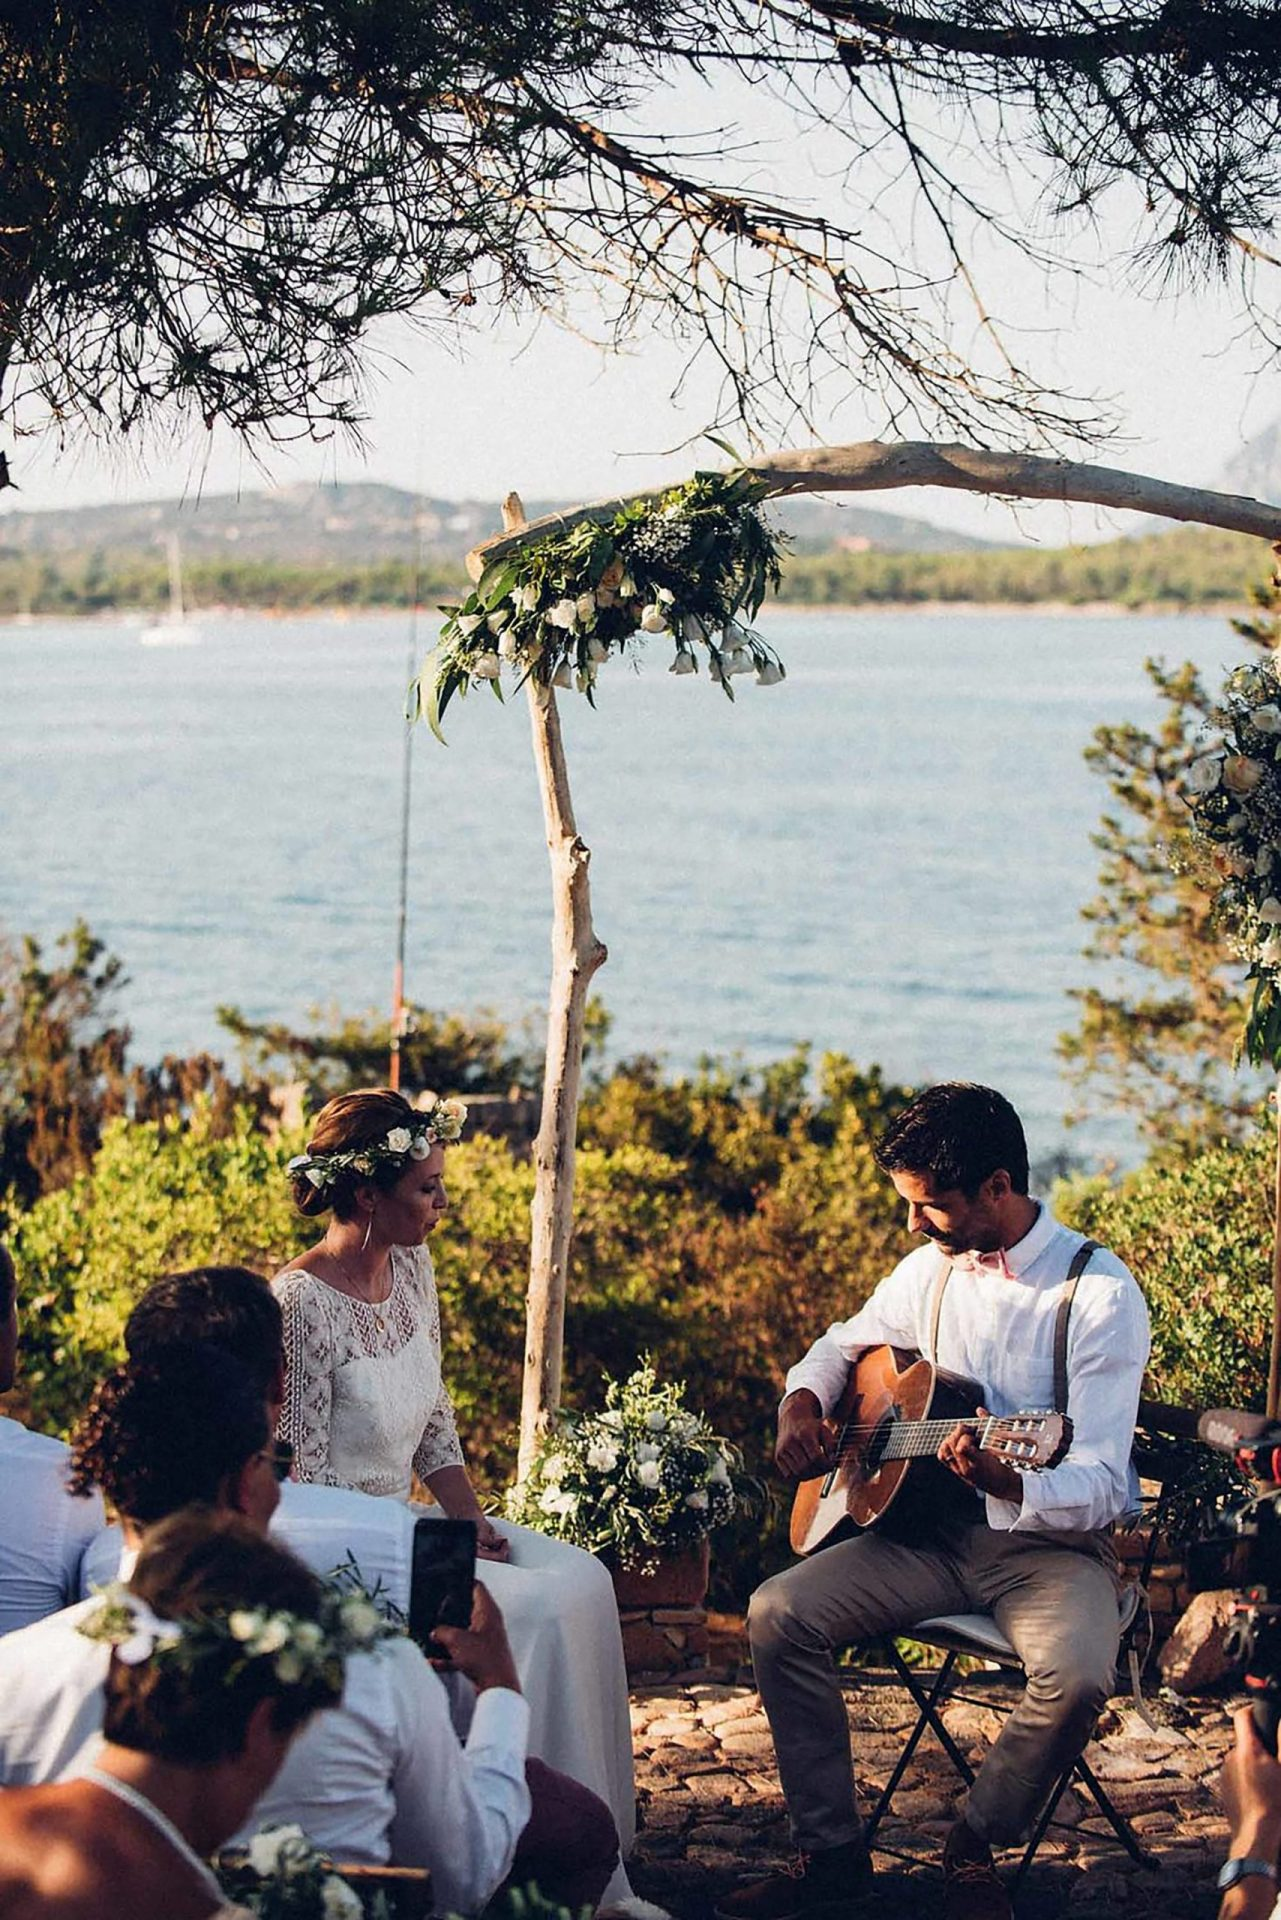 Aurelie and Thomas, wedding ceremony, the groom serenade